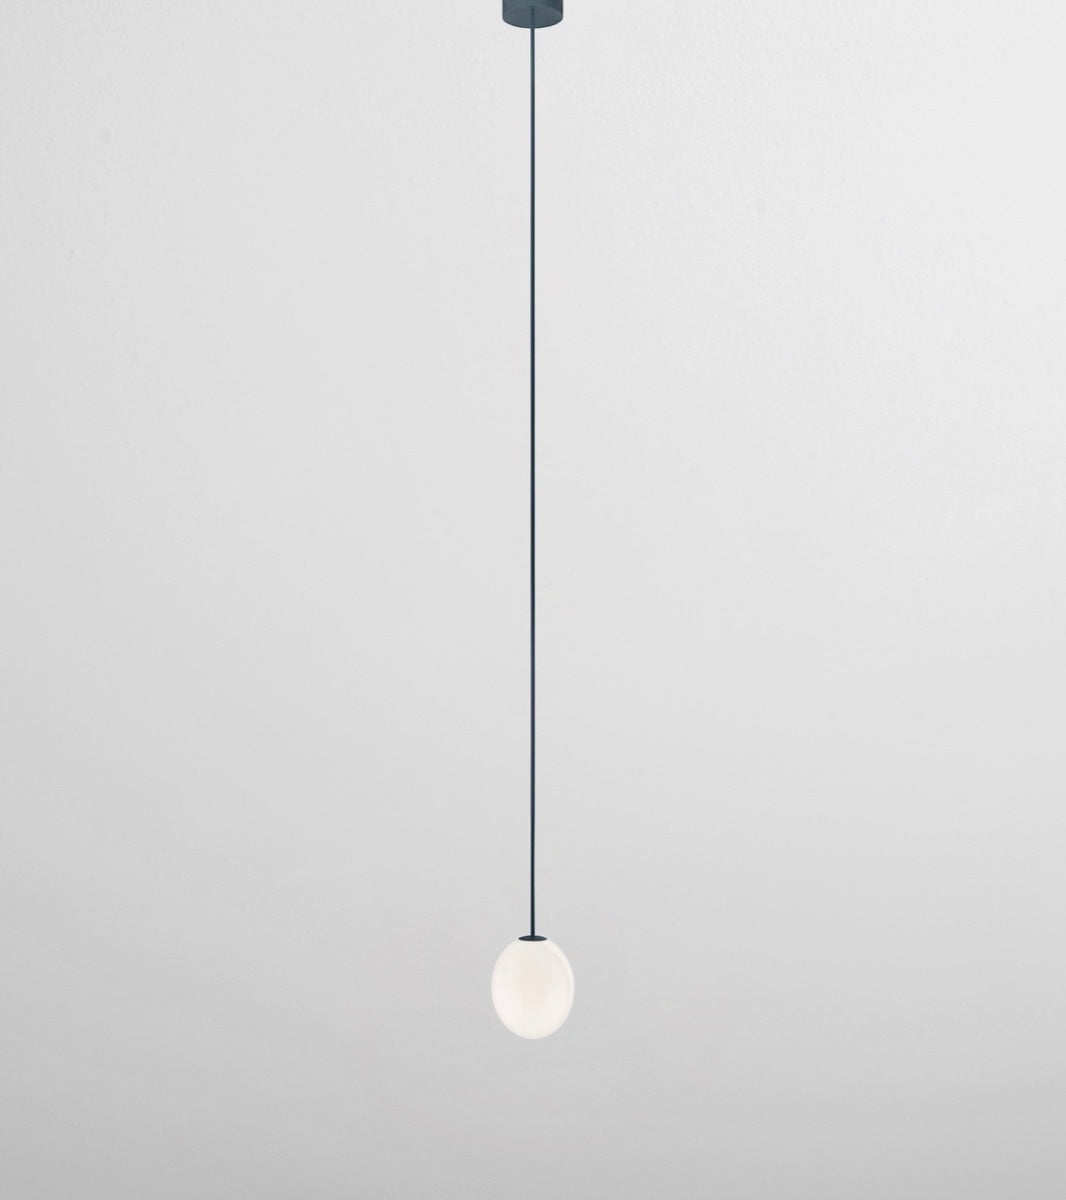 The Philosophical Egg Pendant Rod <br> by Michael Anastassiades